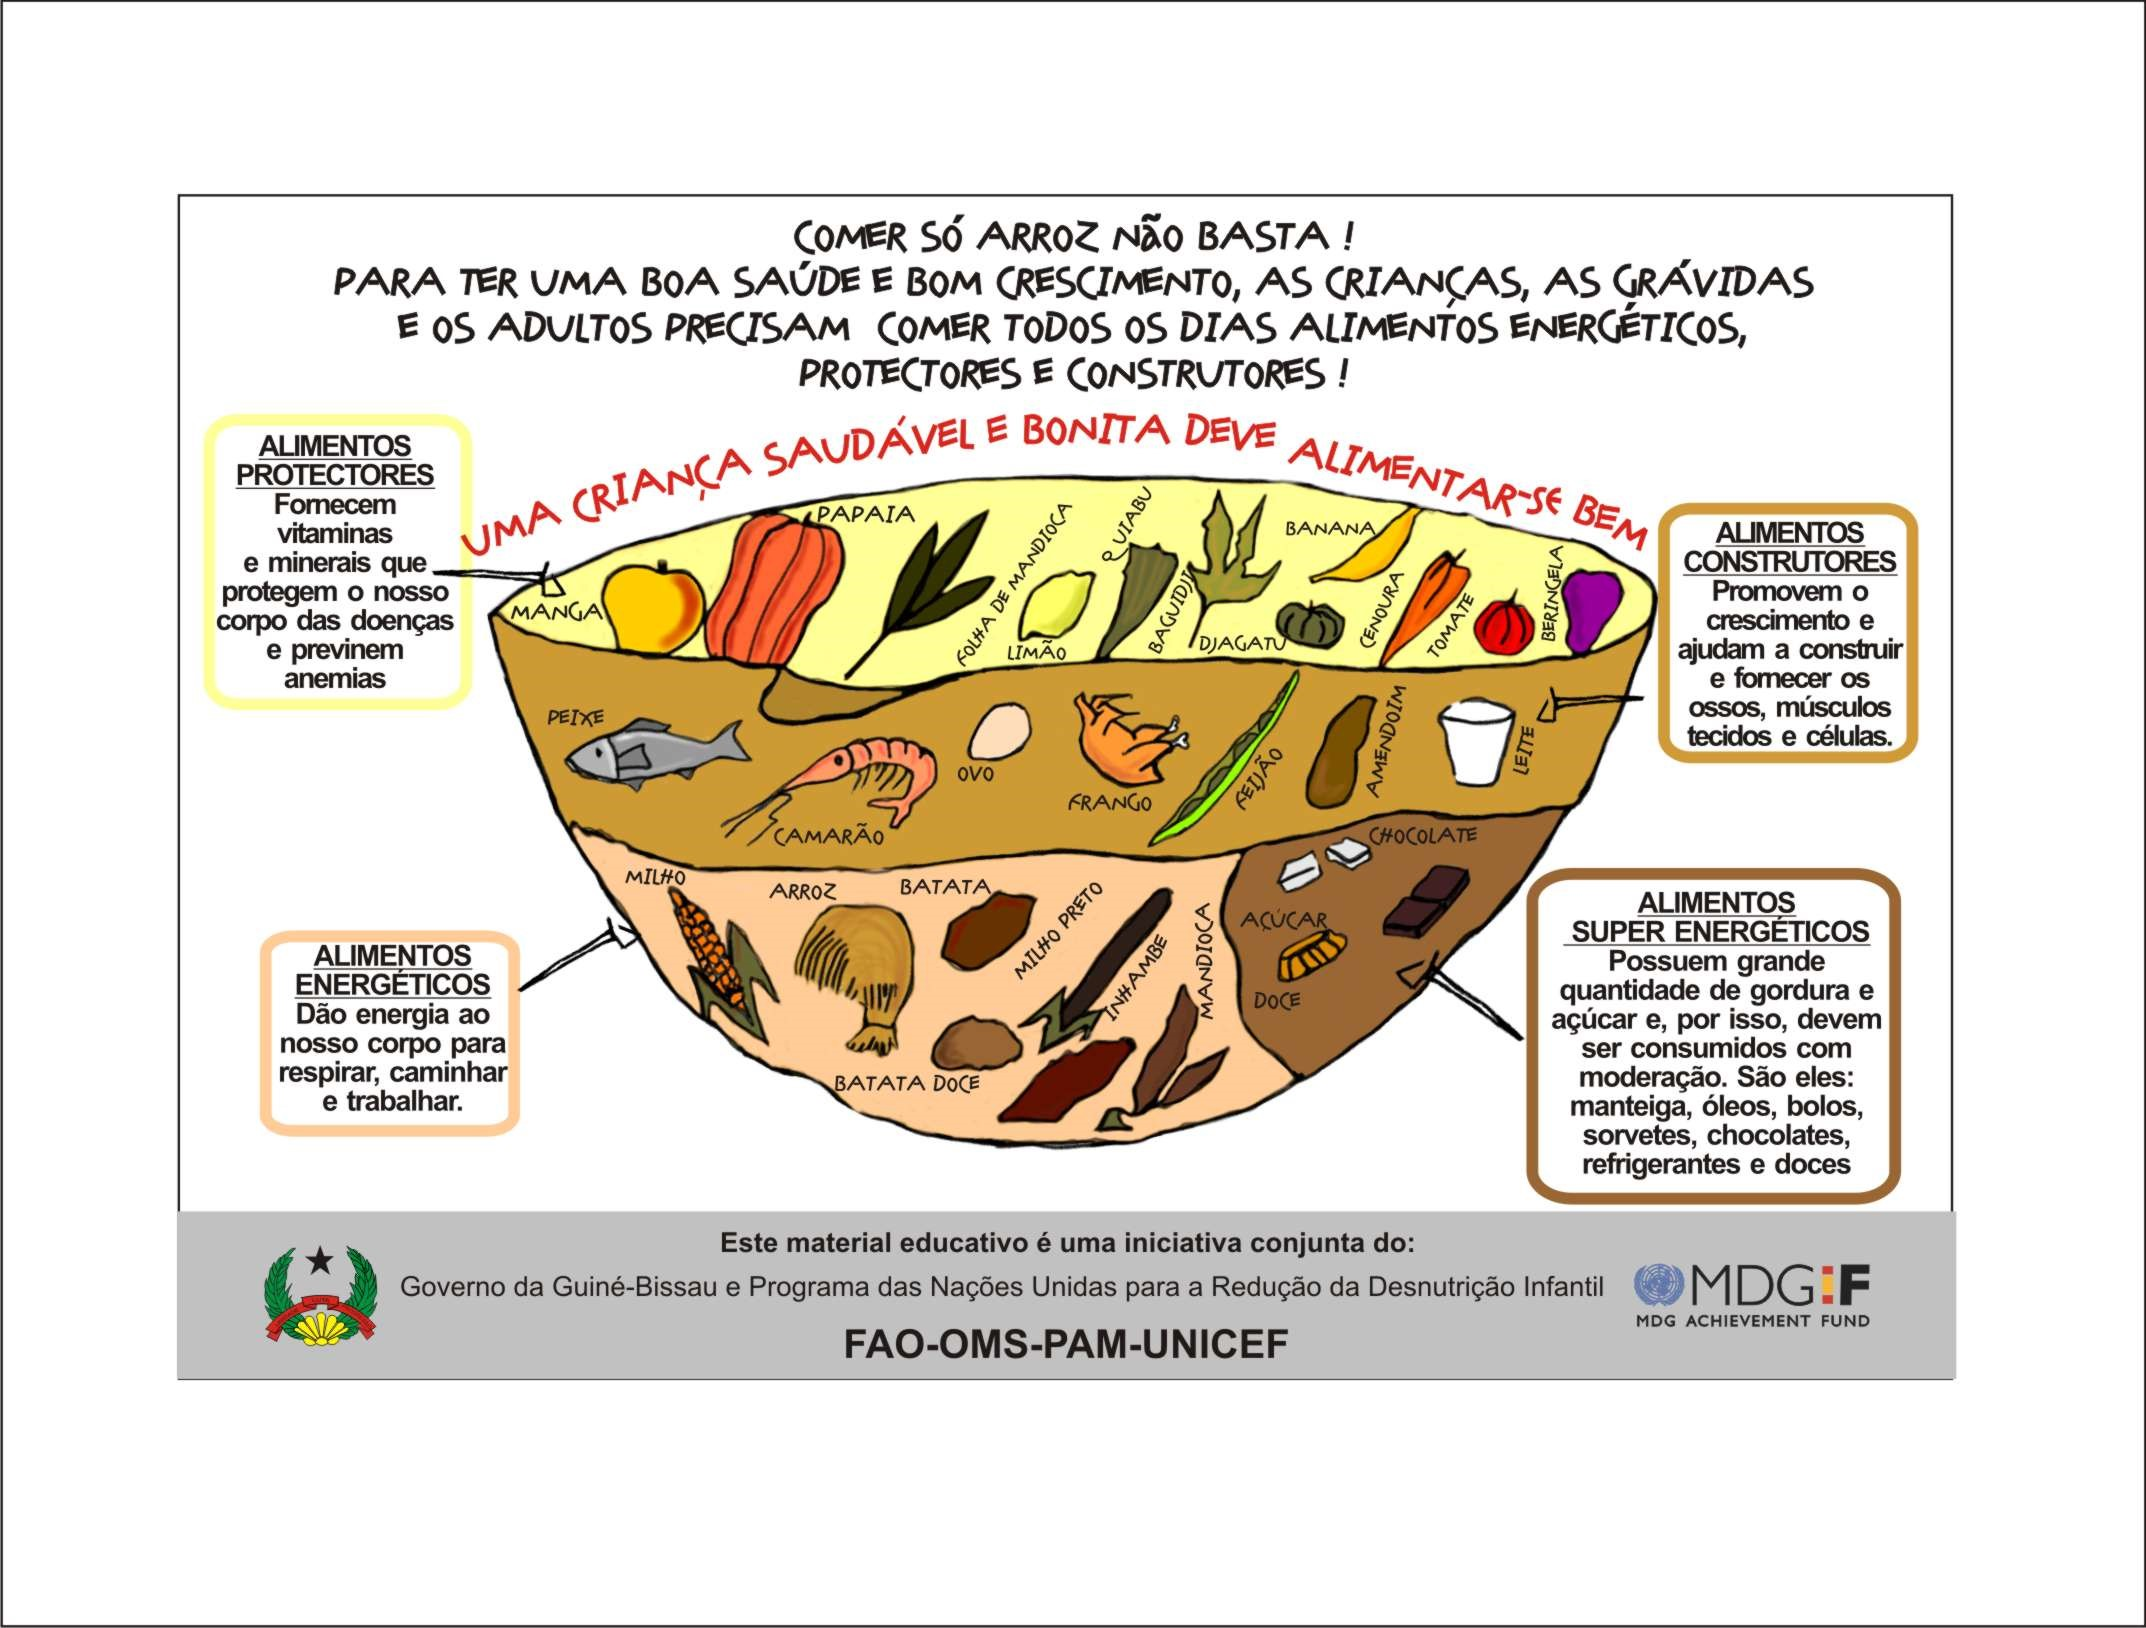 Food pyramid poster in Portuguese, created by the Programme